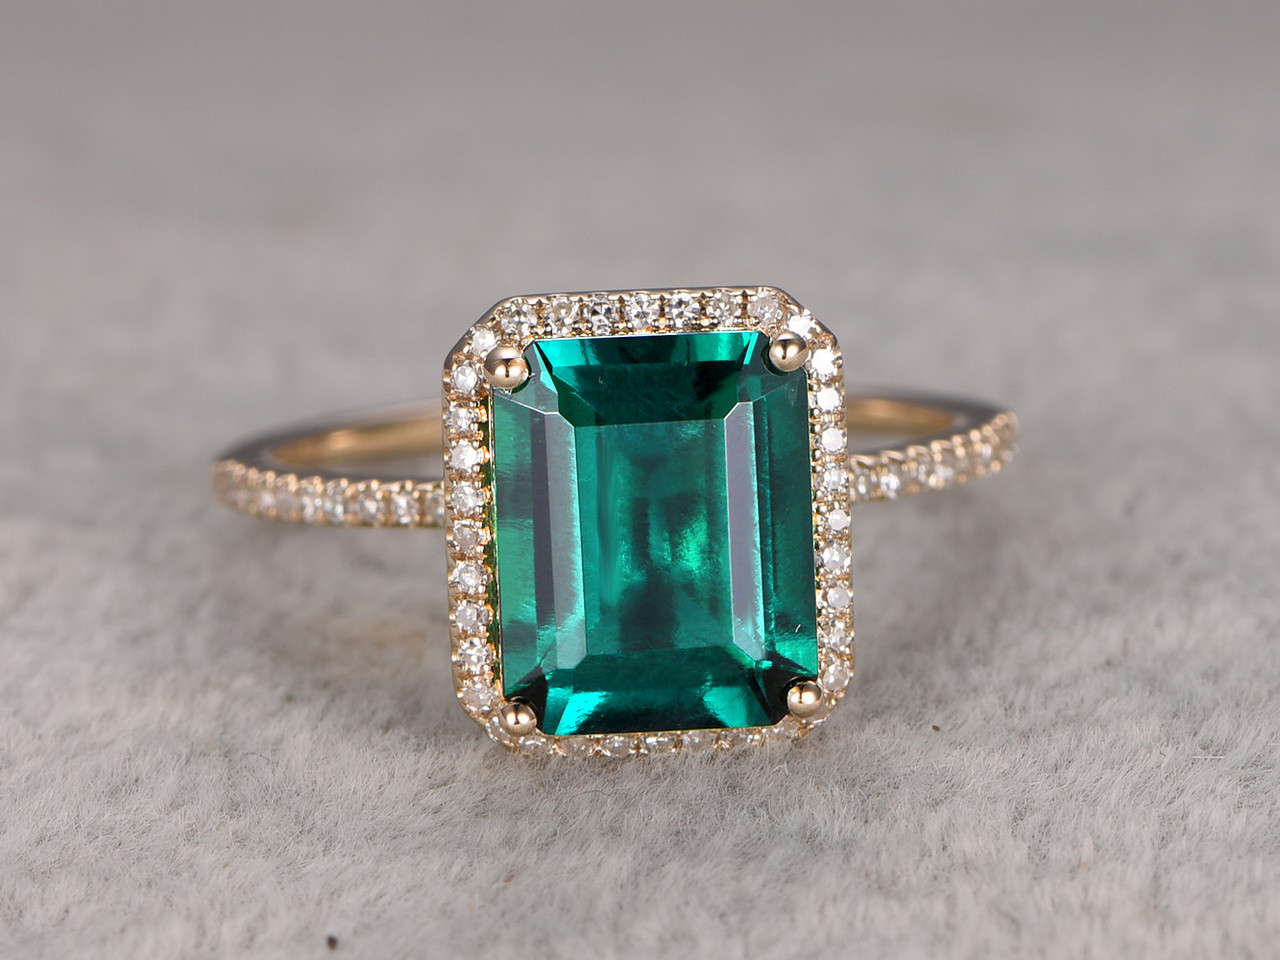 crop engagement scale emerald shoulders in upscale diamond cut subsampling gemstone rings the white false jewellery david gold product shop set morris with baguette ring tapered